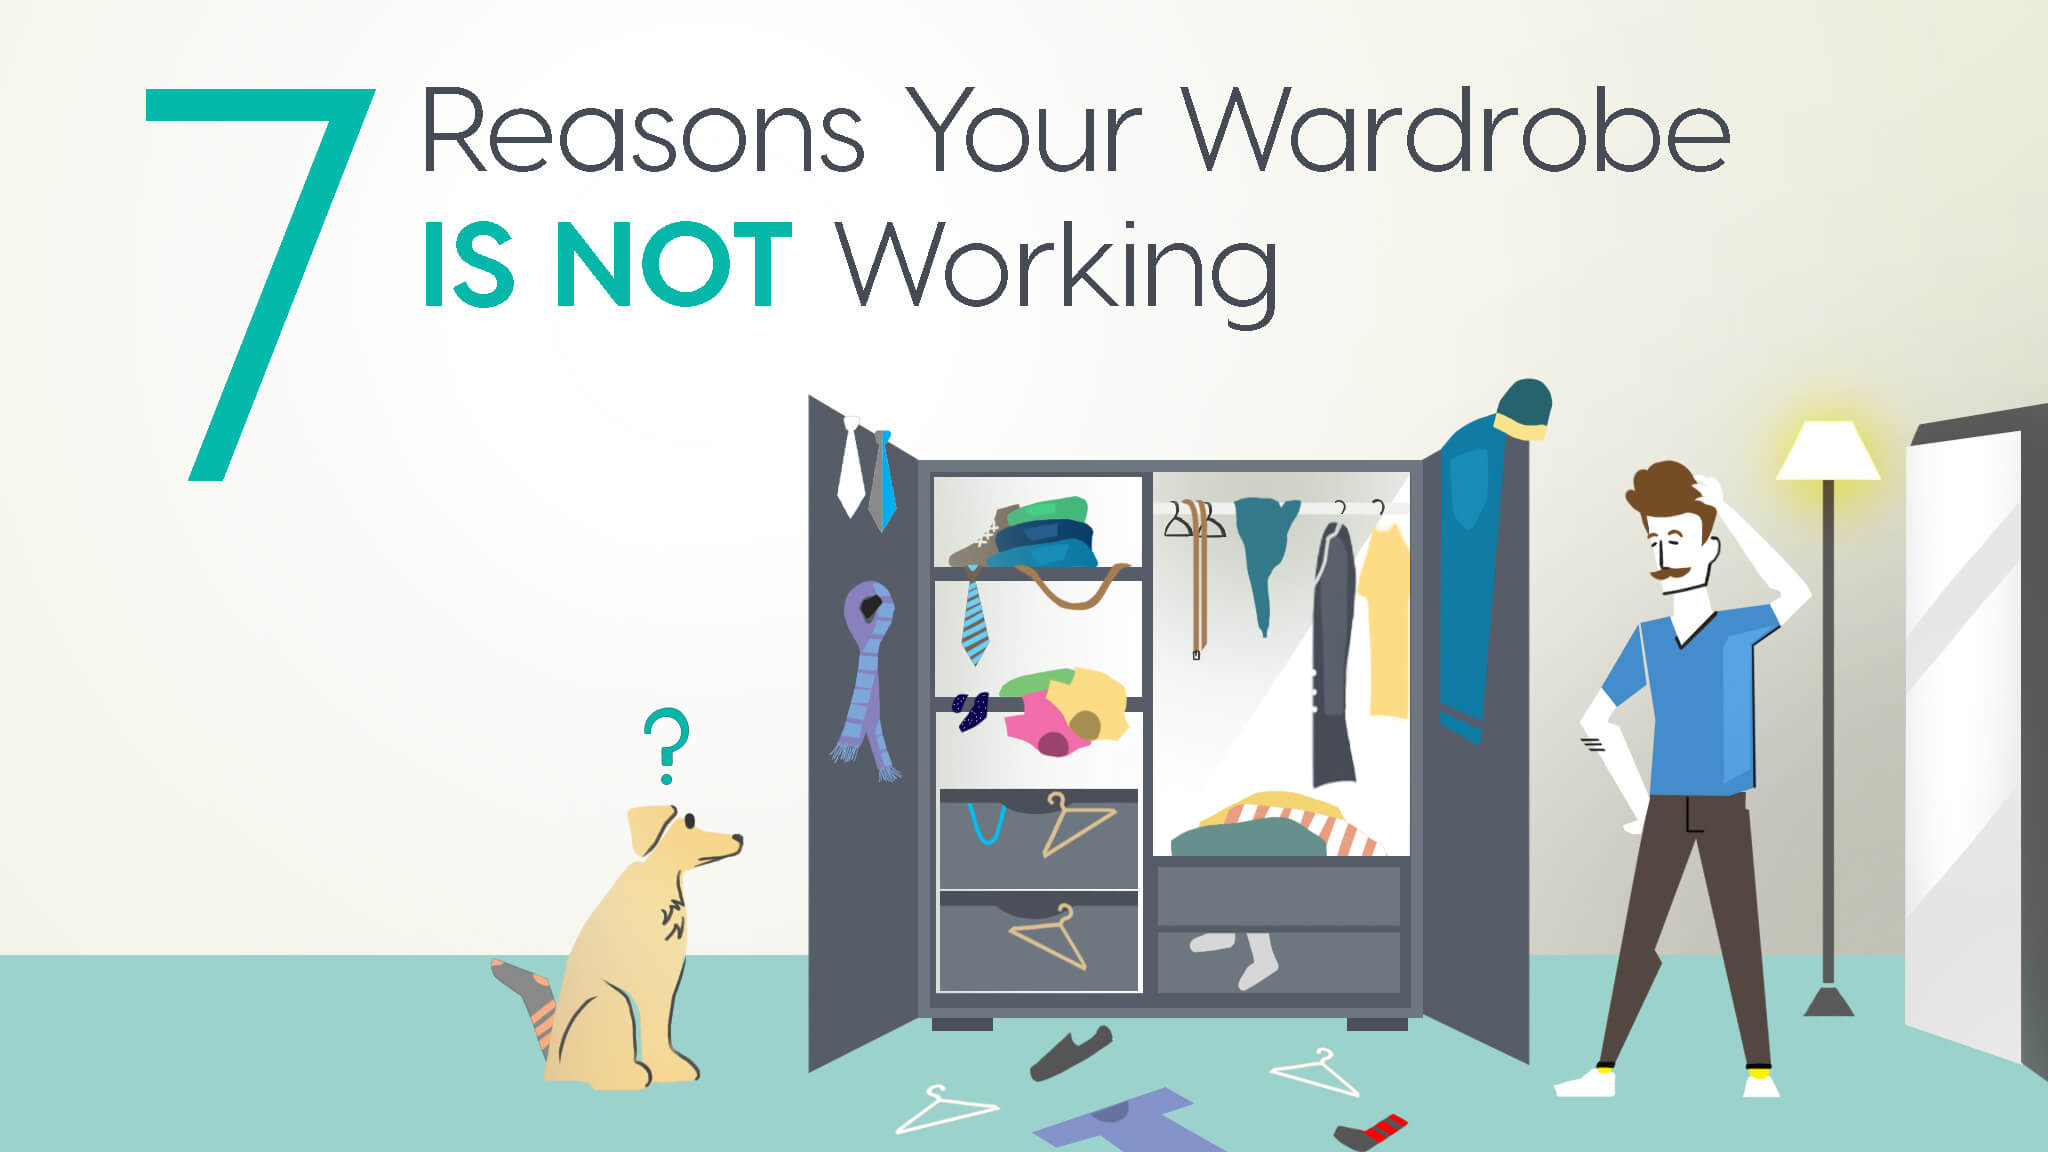 7 Reasons Your Wardrobe IS NOT Working & How To Fix The Problem